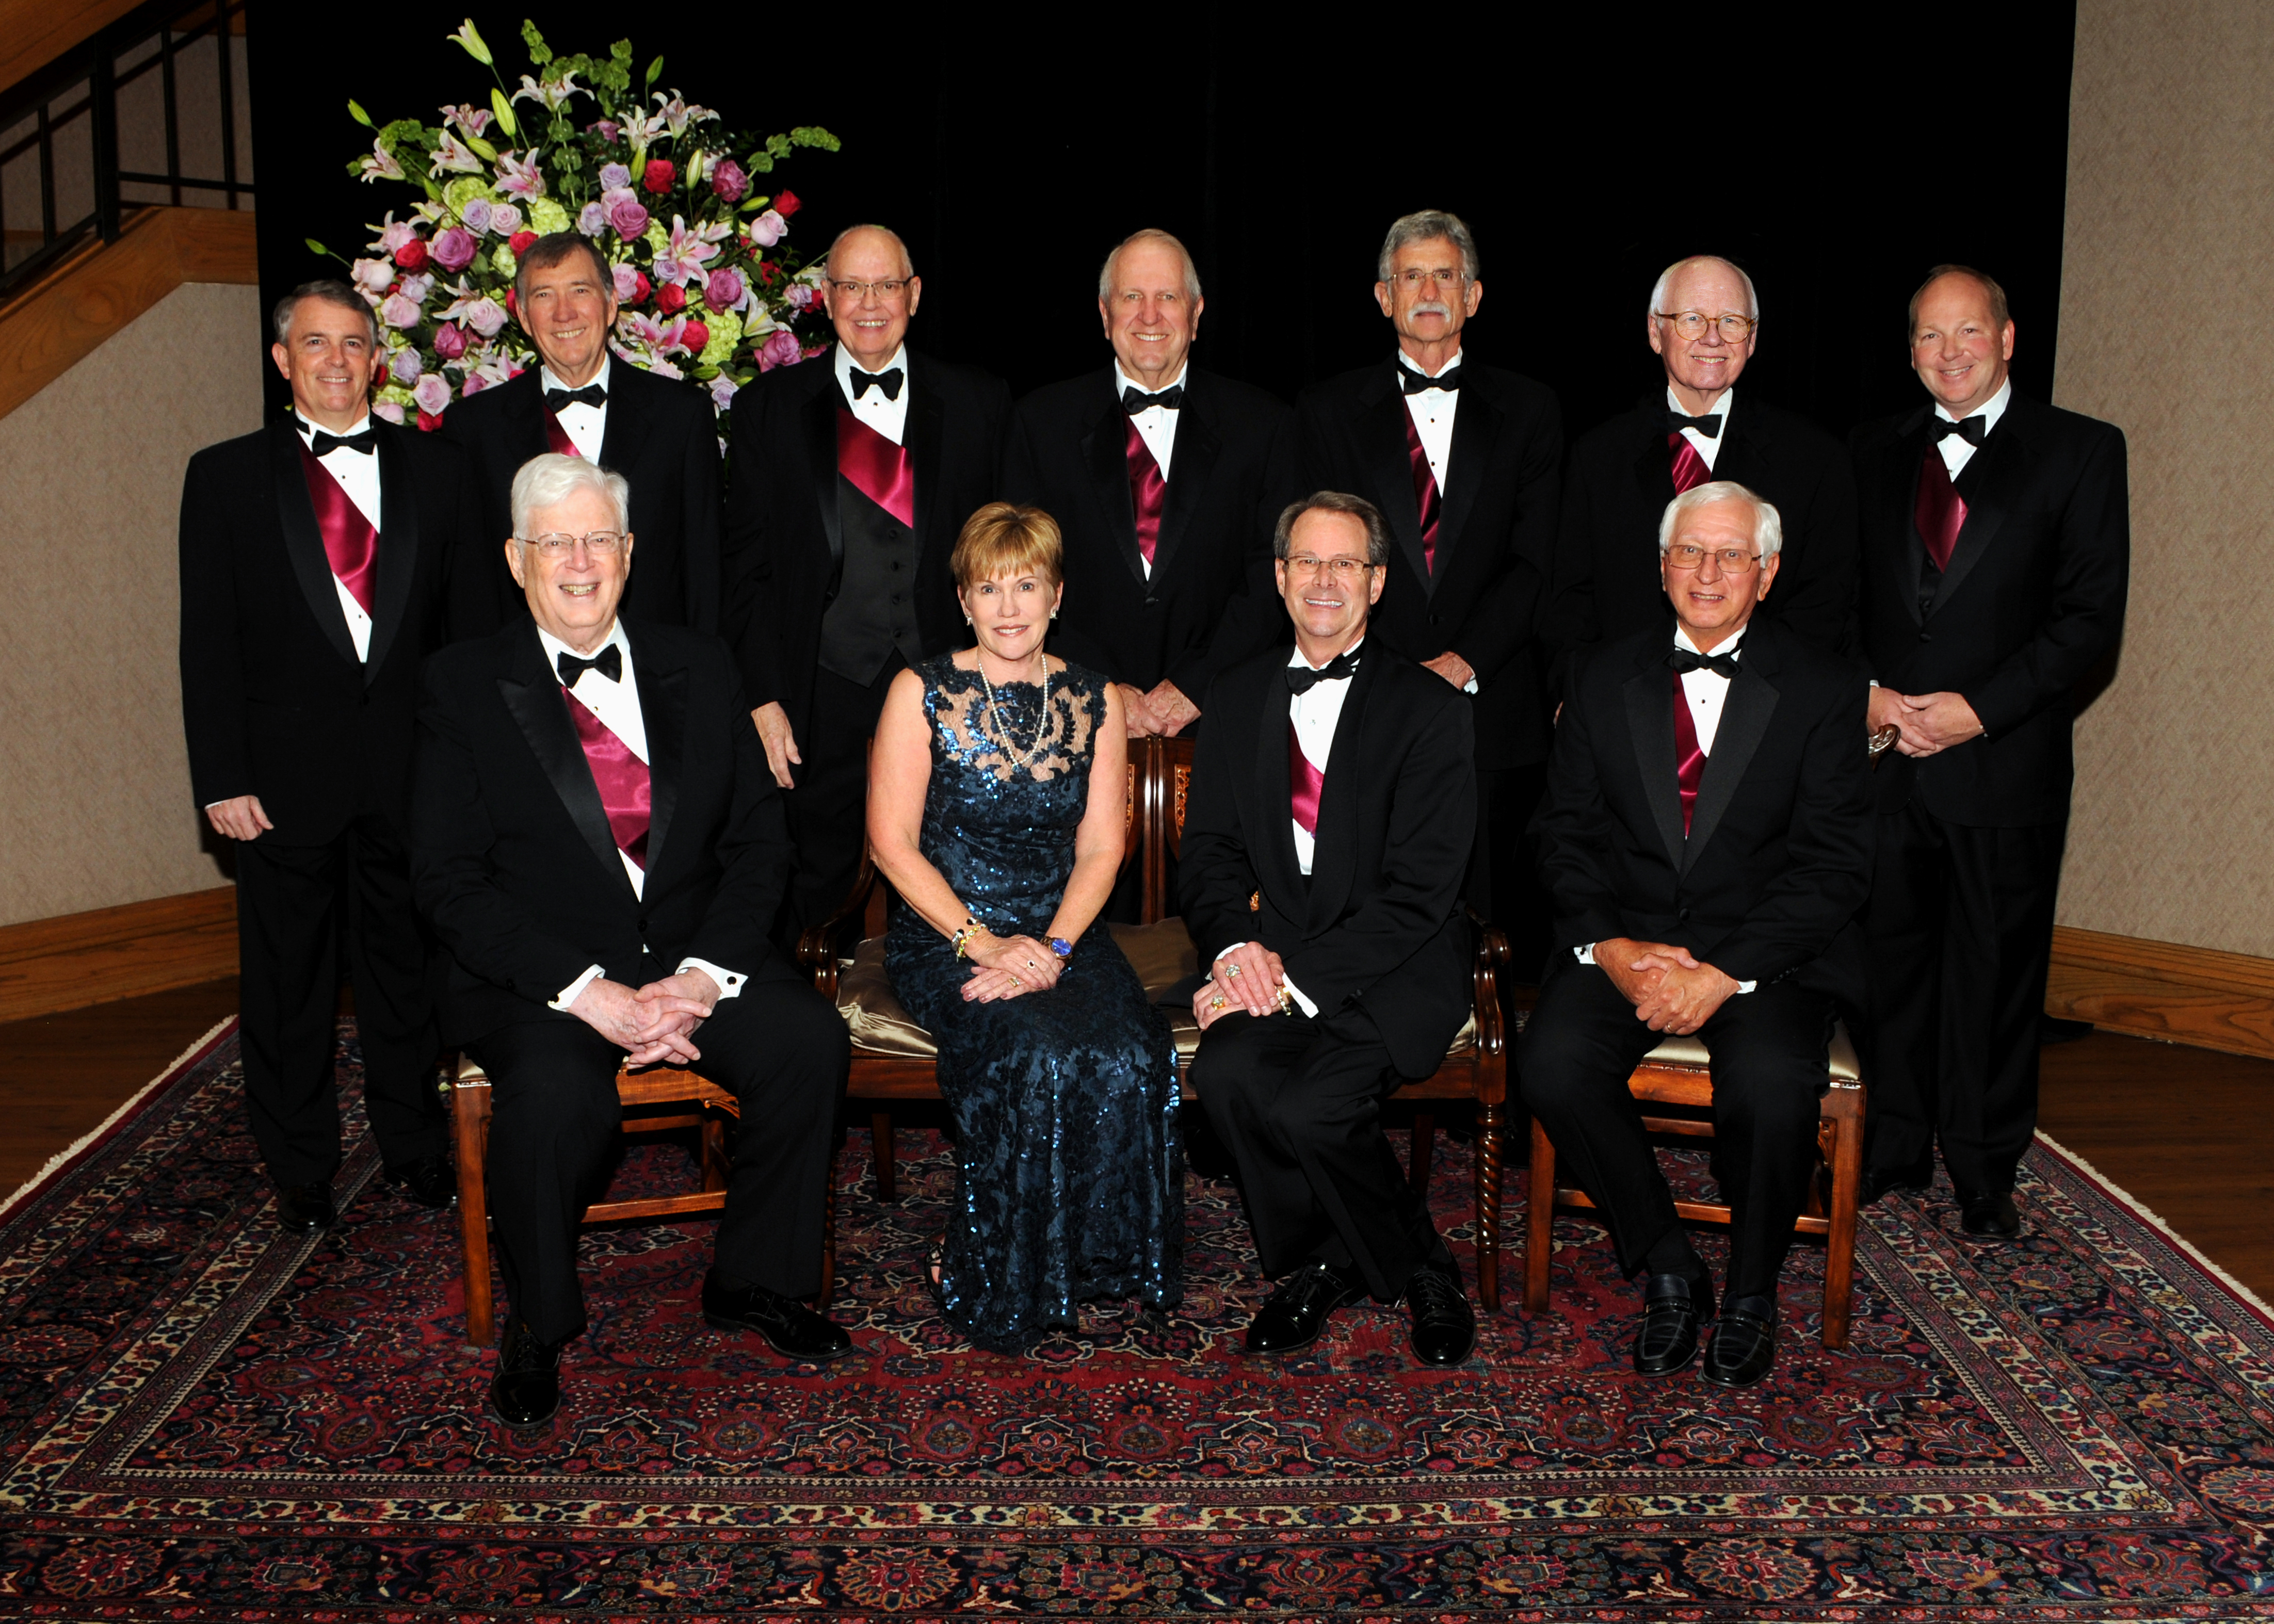 Symphony Ball Advisors: Row 1 (seated left to right) Dr. Steven Smith, Linda Akenhead (Ball Chair), Randy Roper, Dr. Doug Patz, | Row 2 (standing left to right) Warne Heath, Dr. John Cox, Dan Halcomb, John Switzer, Larry Thomas, Byrd Latham, Michael Timberlake